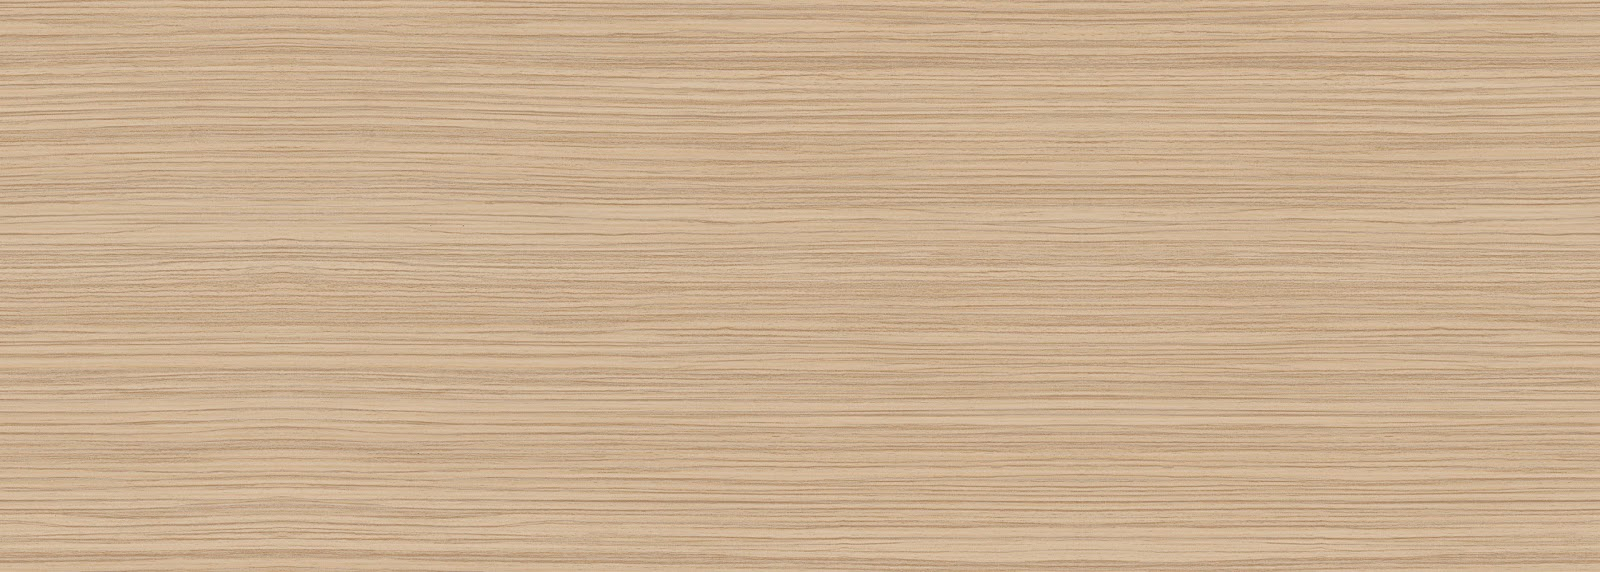 Pics photos texture of seamless tileable wood